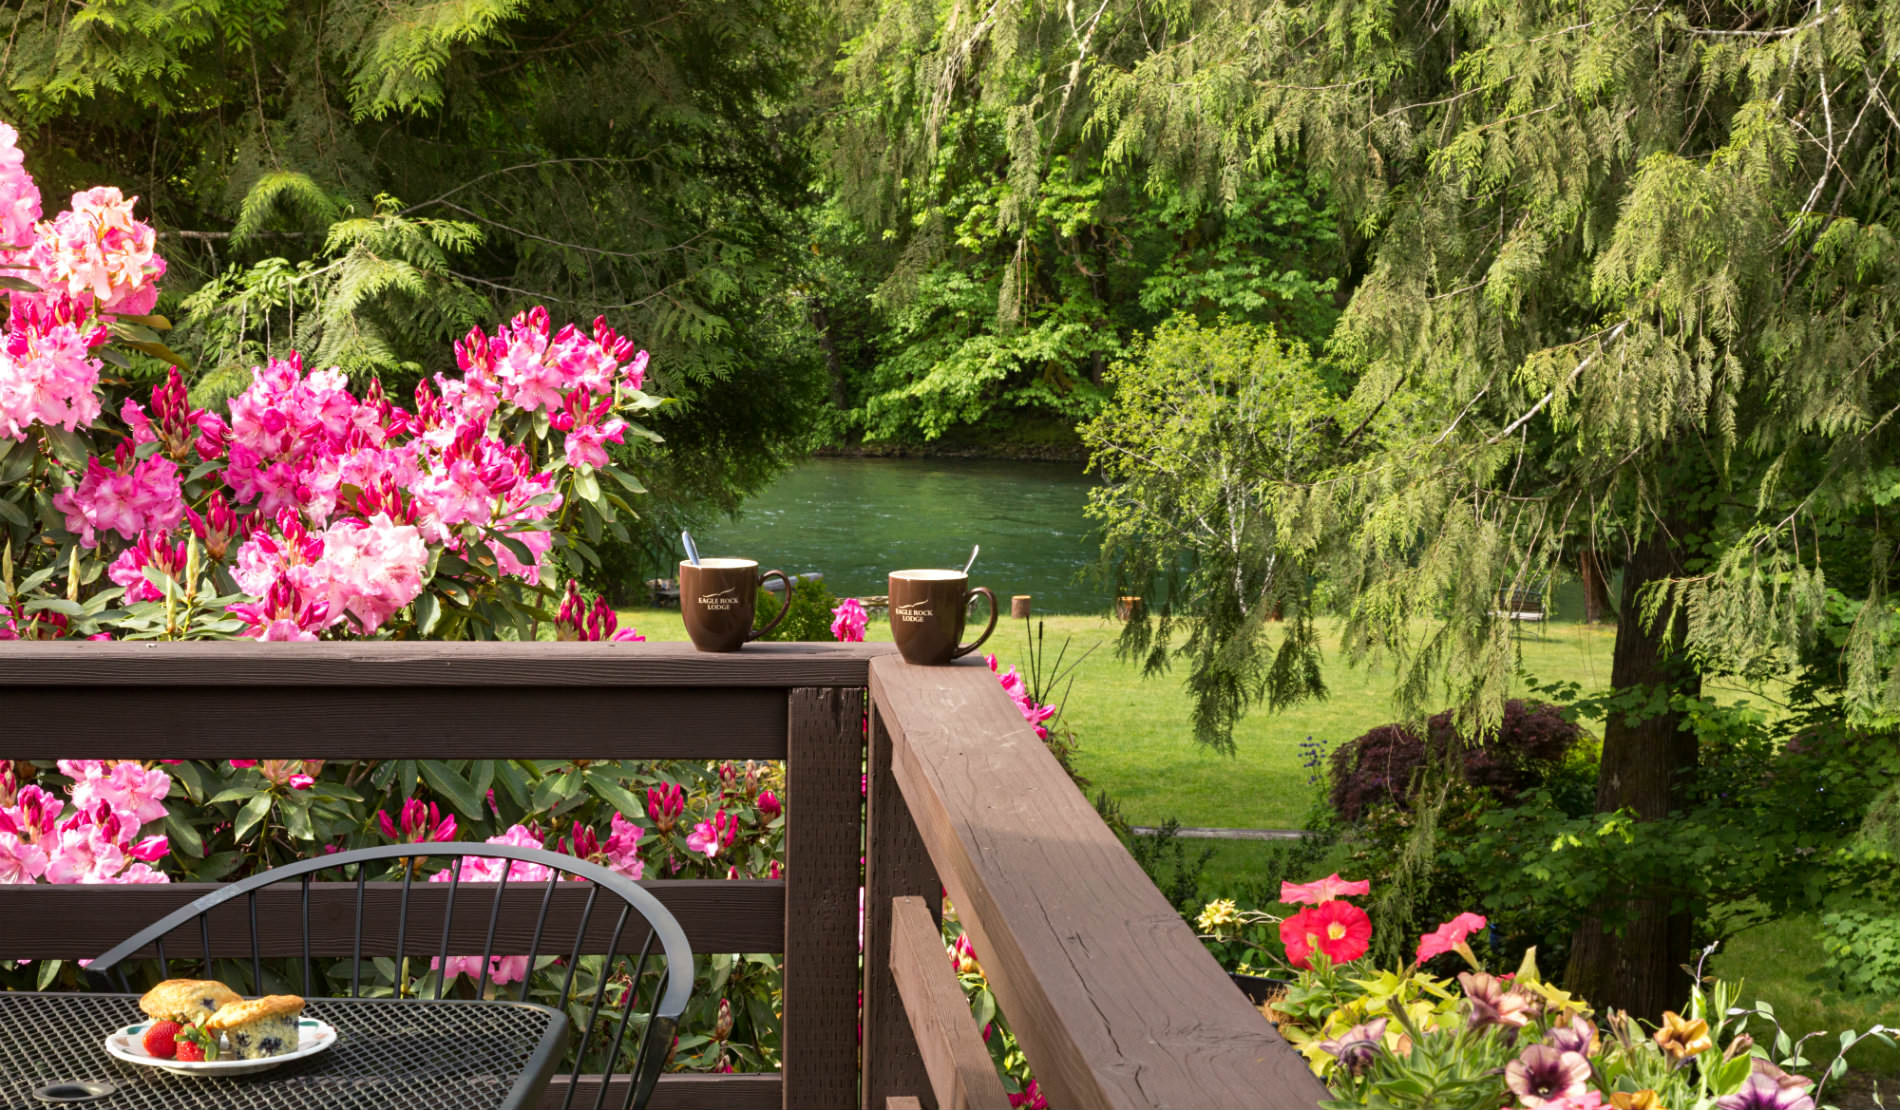 Corner of wooden deck with coffee cups on ledge, pink flowers and green tree in background